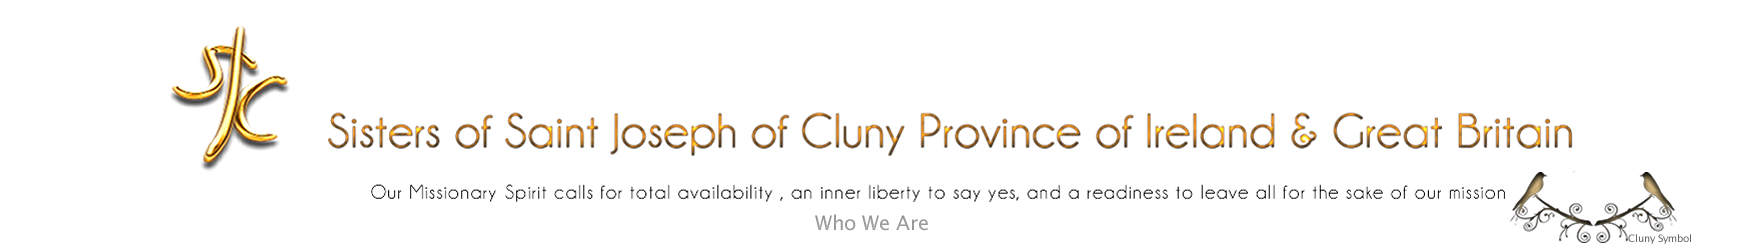 who are cluny